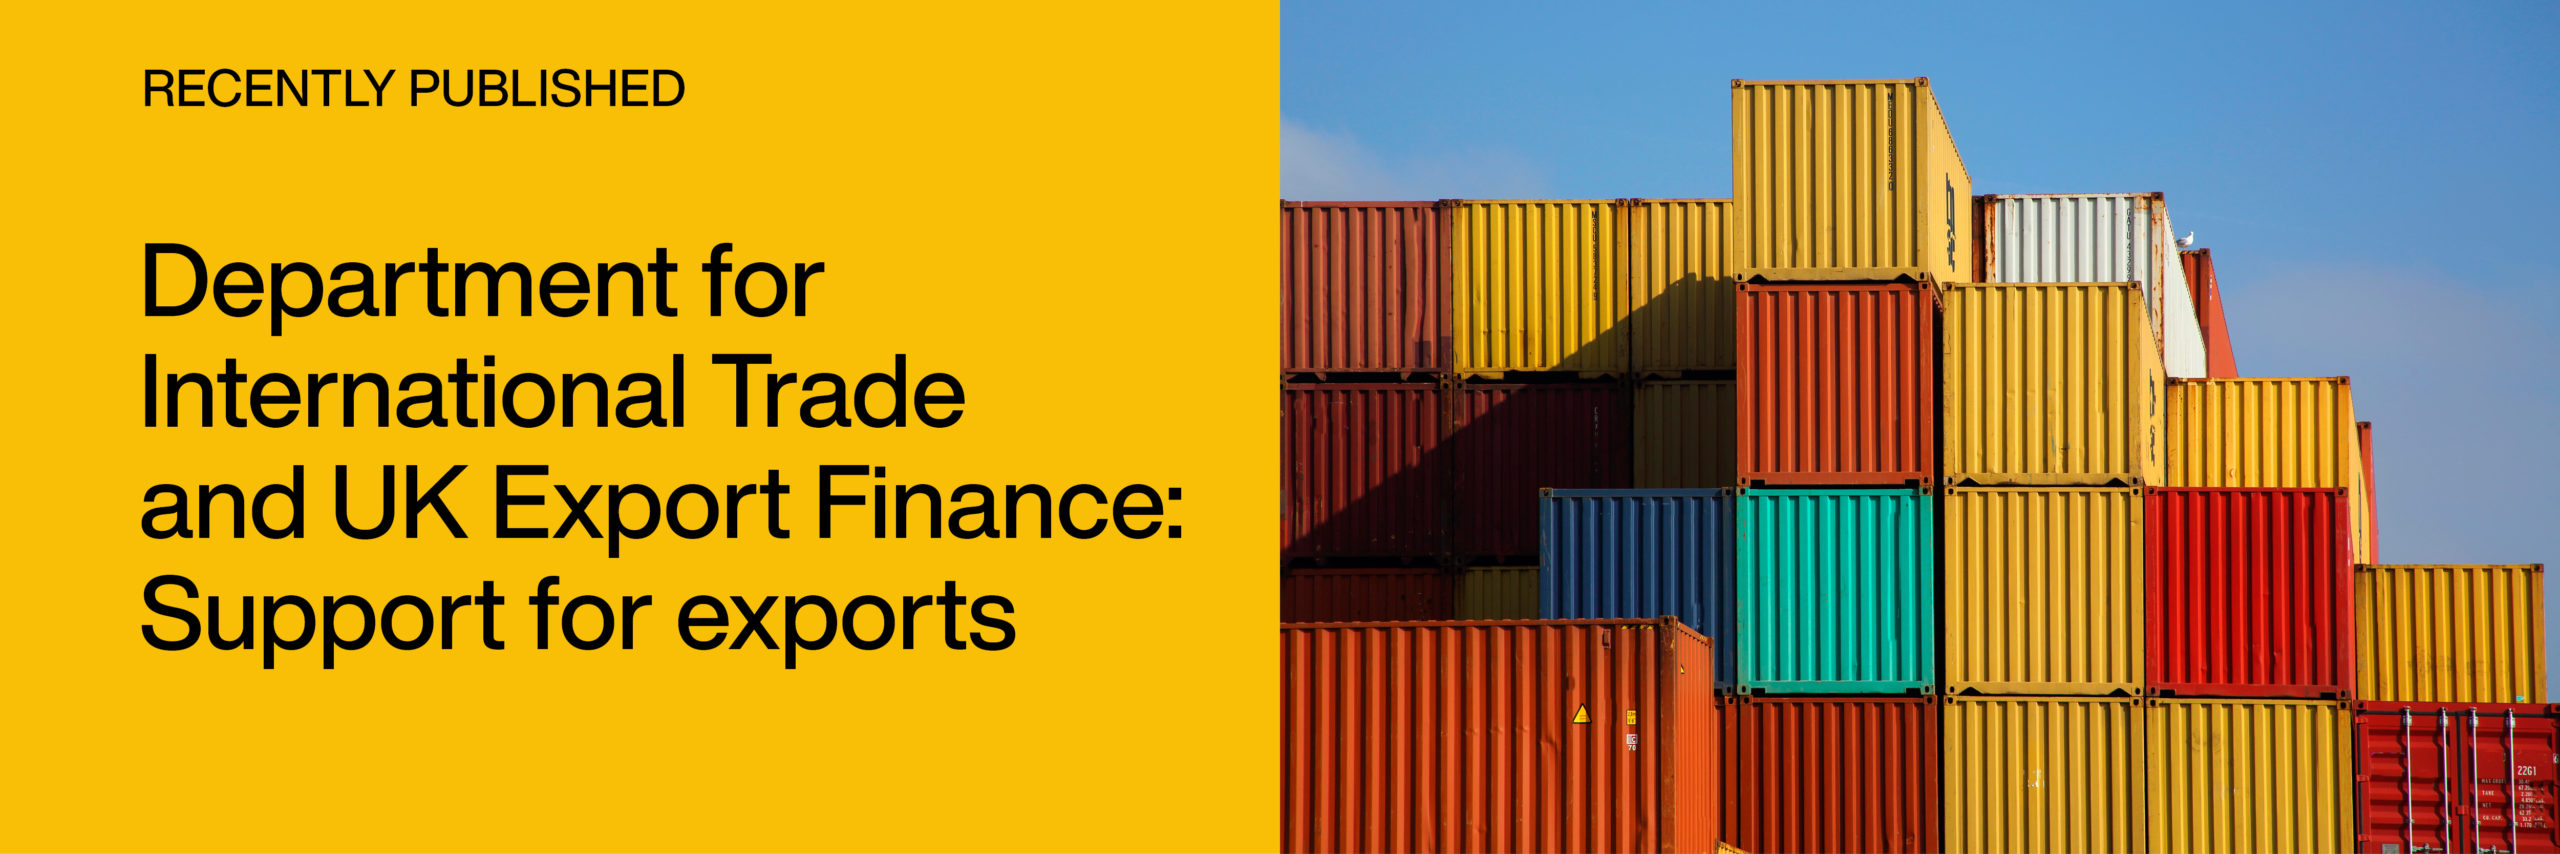 Recently published: Department for International Trade and UK Export Finance: Support for exports